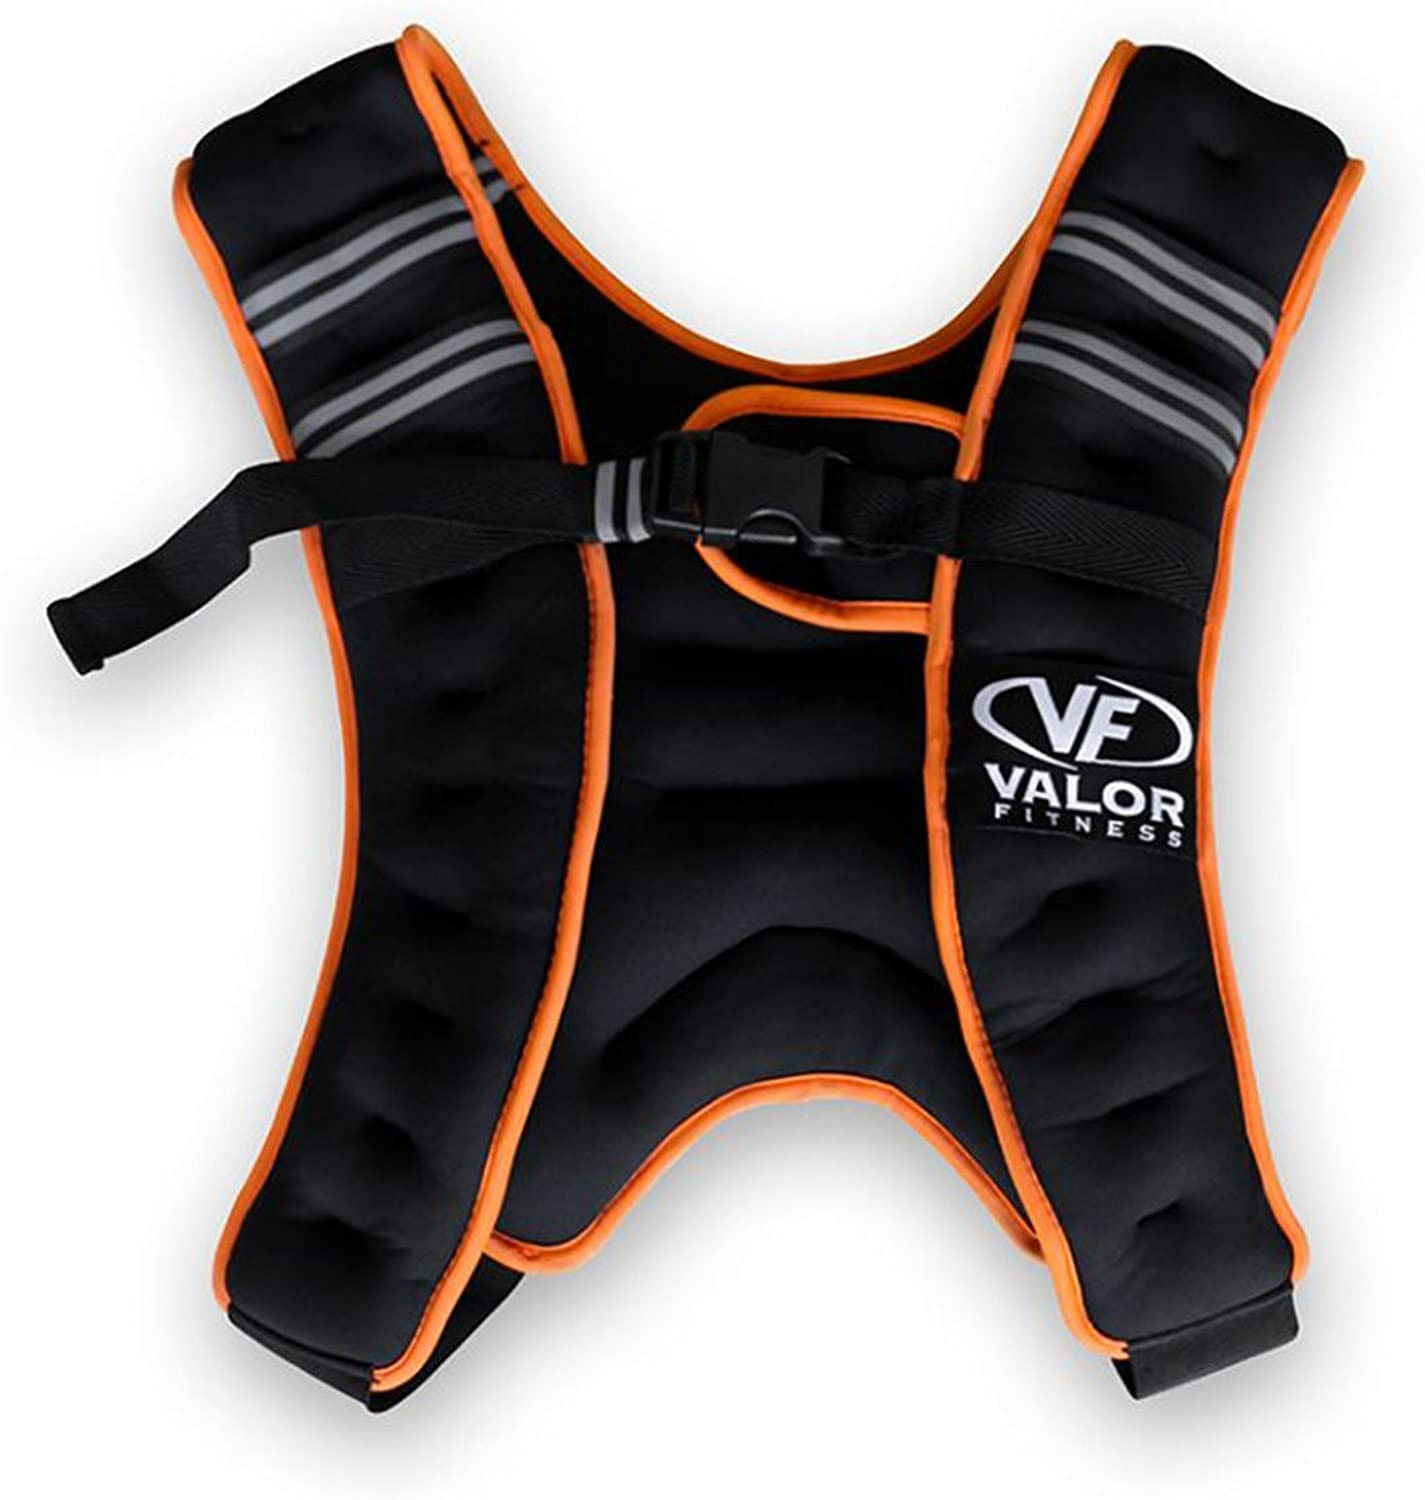 Valour Fitness EH18 8.2kg Weight Vest